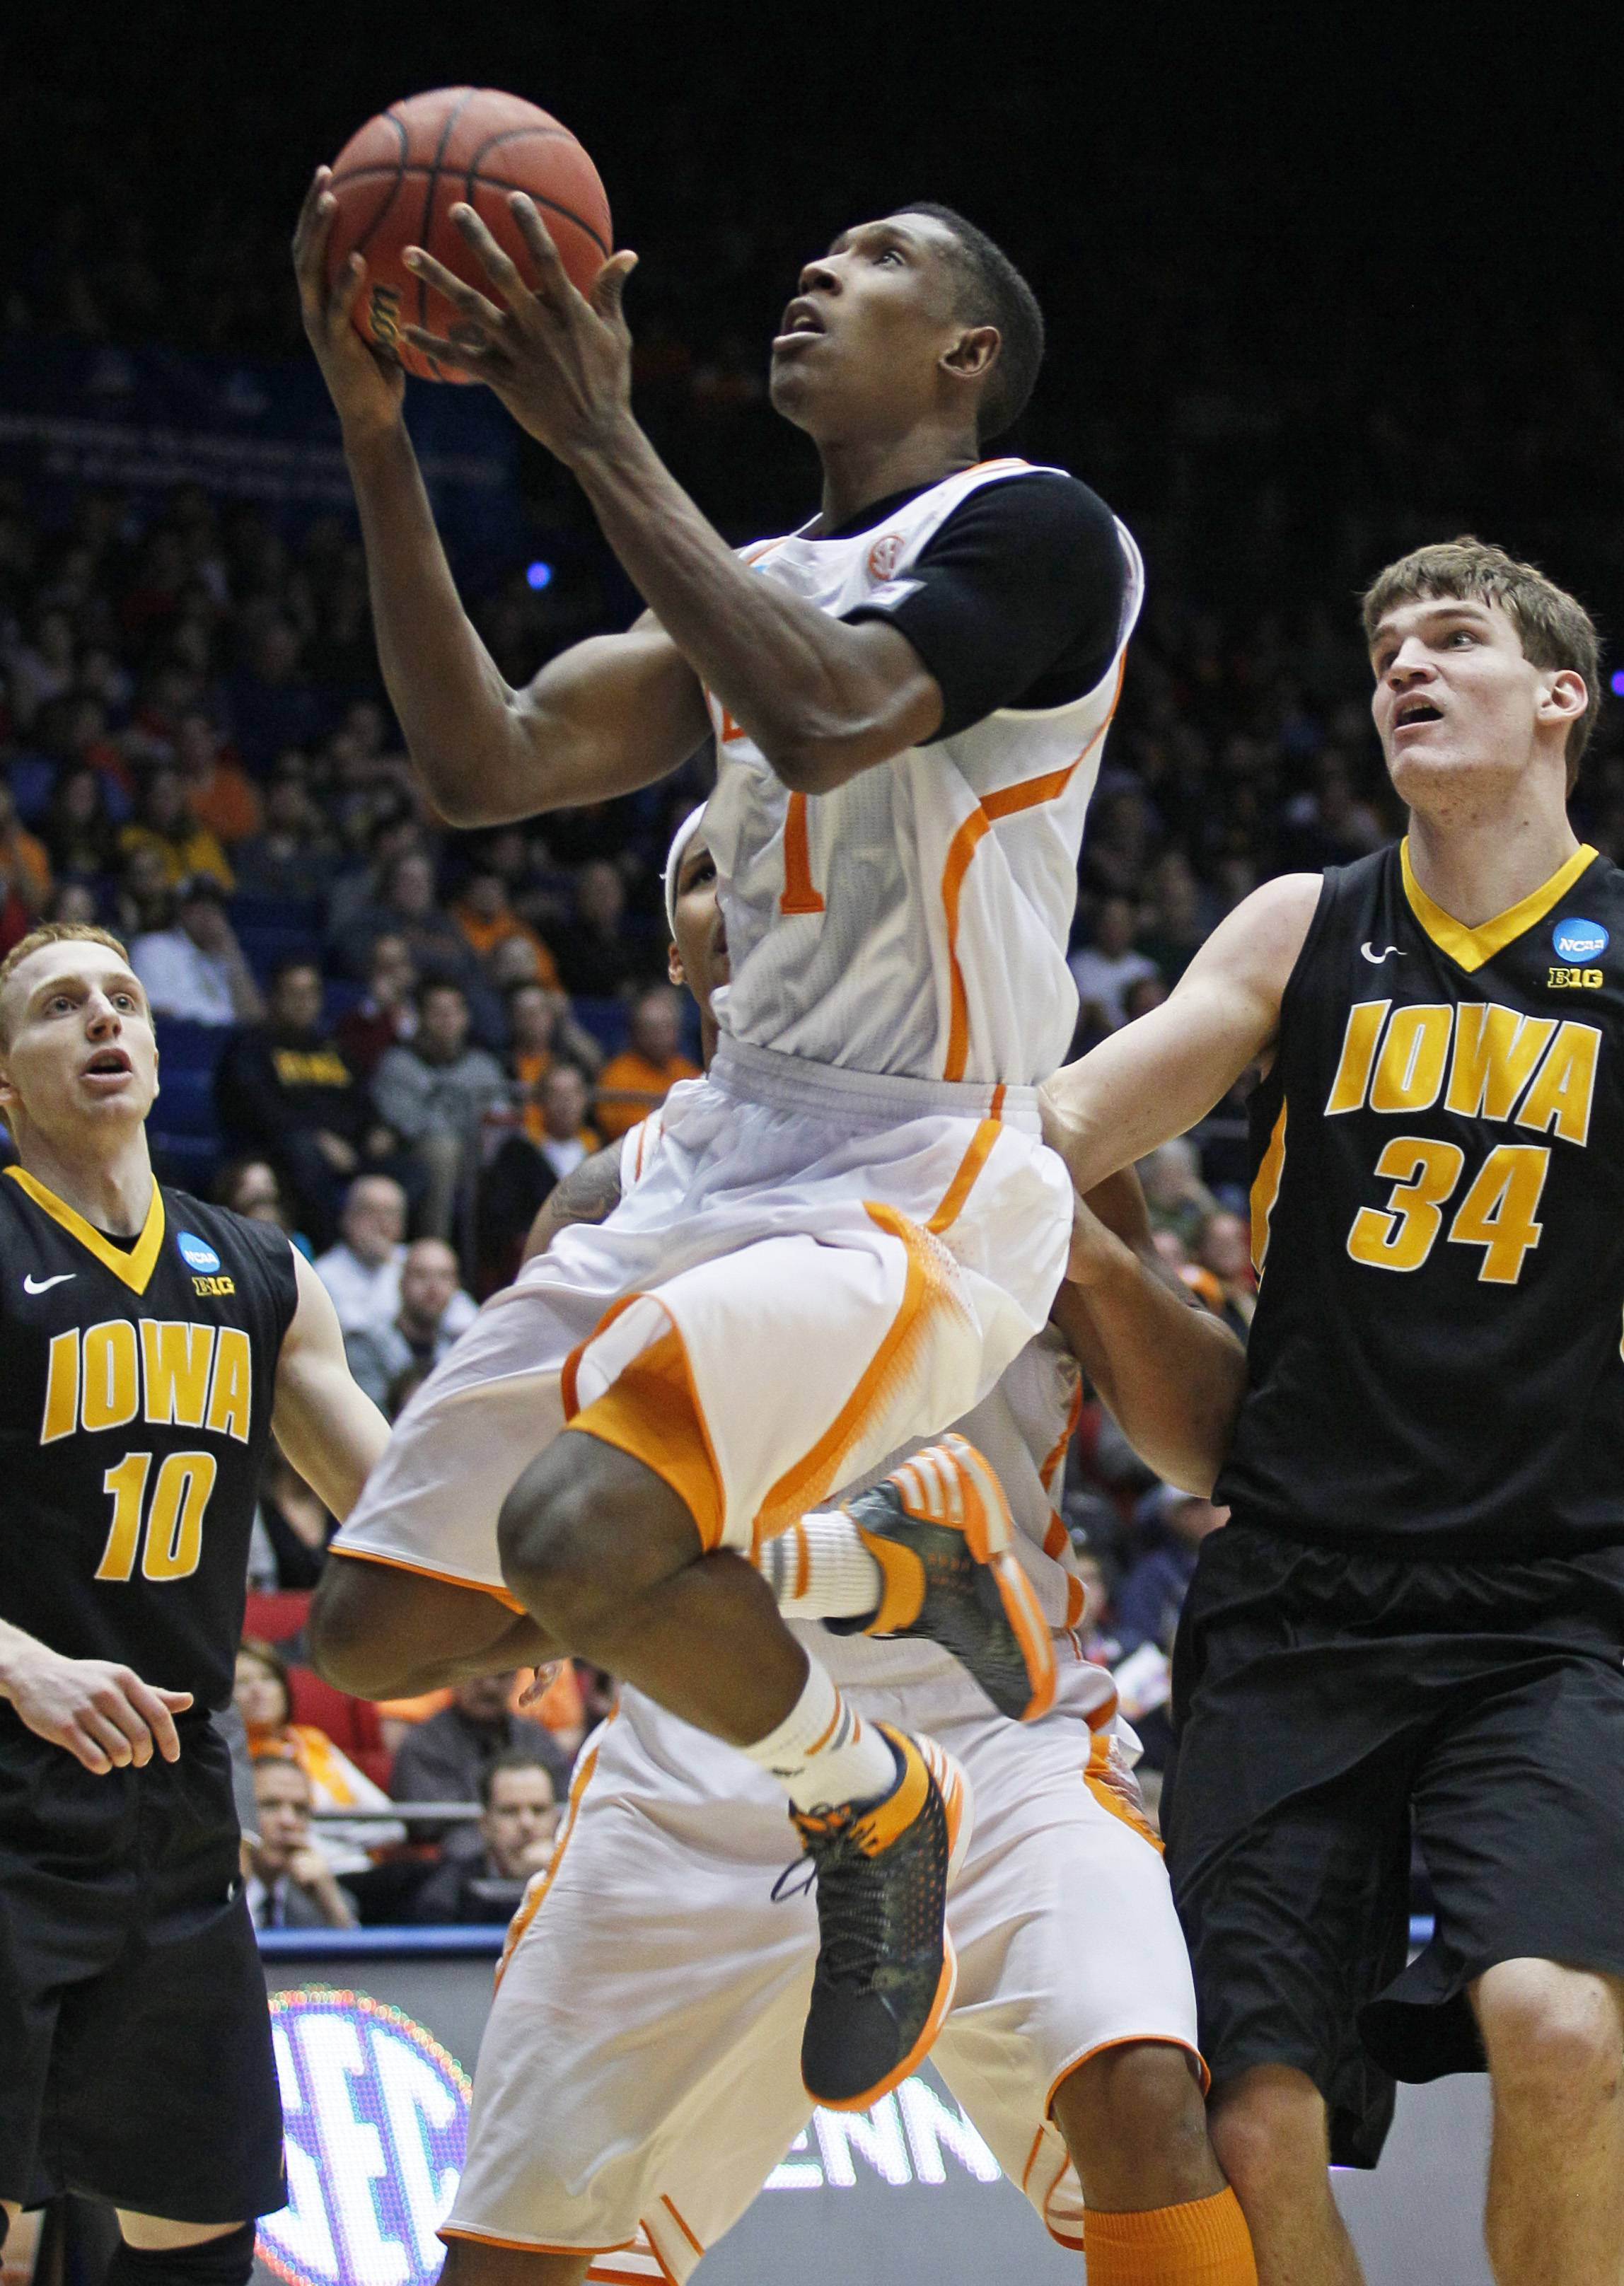 Associated Press Tennessee guard Josh Richardson (1) drives between Iowa guard Mike Gesell (10) and center Adam Woodbury (34) in the second half of a first-round game of the NCAA college basketball tournament on Wednesday in Dayton, Ohio.